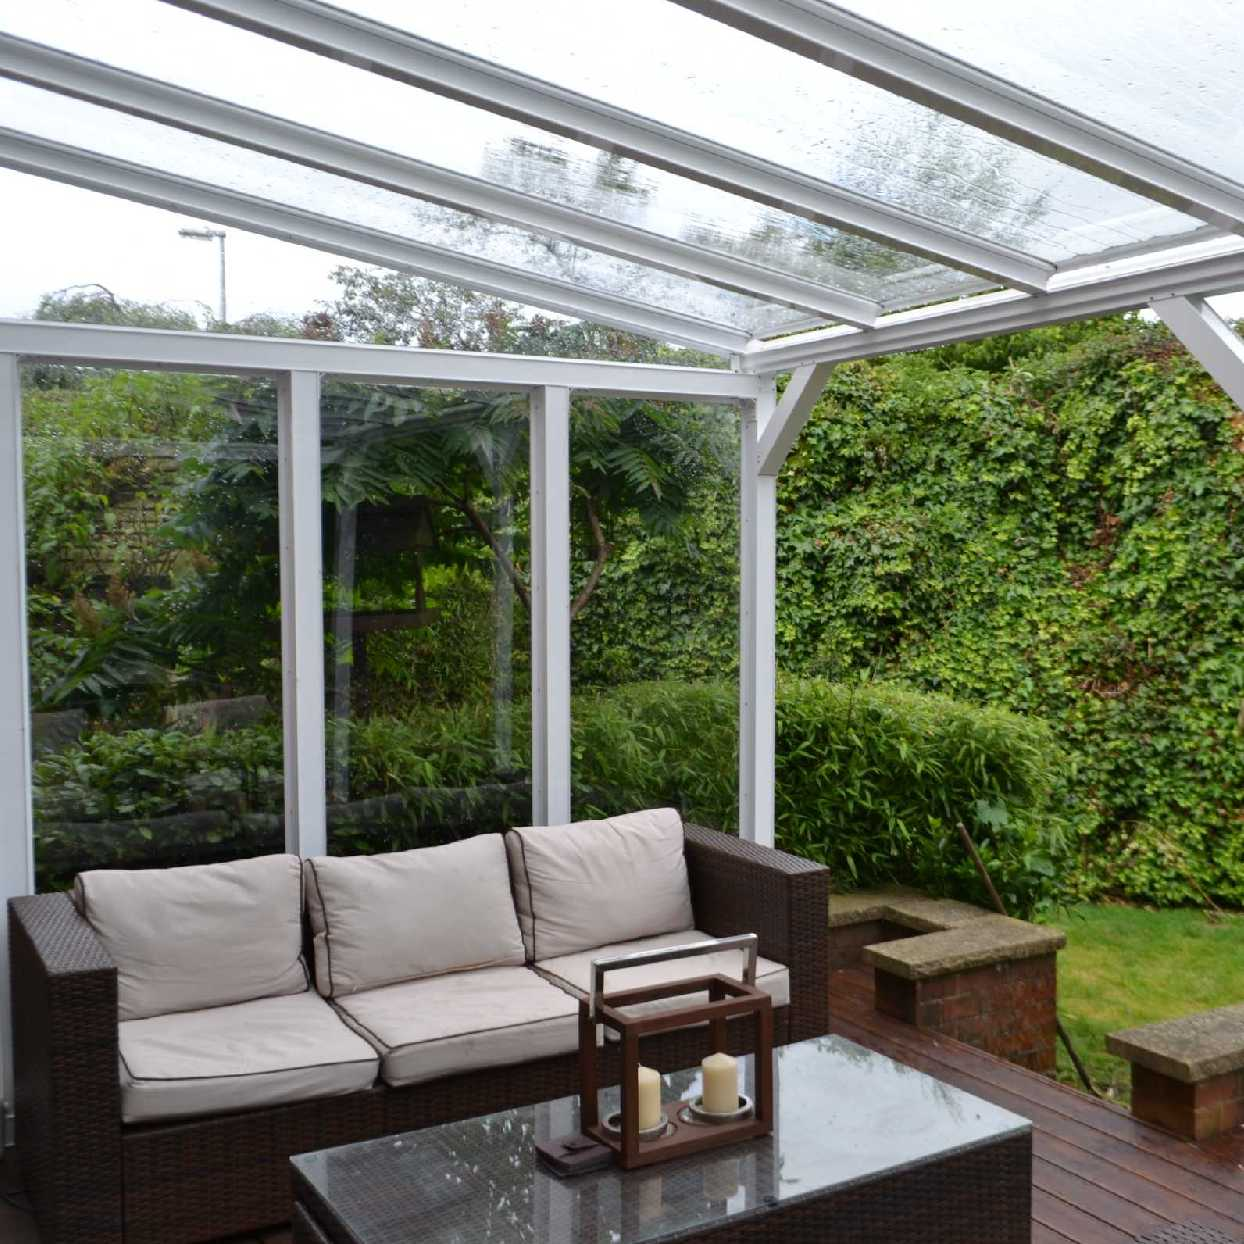 Omega Smart Lean-To Canopy UNGLAZED for 6mm Glazing - 3.5m (W) x 3.5m (P), (3) Supporting Posts